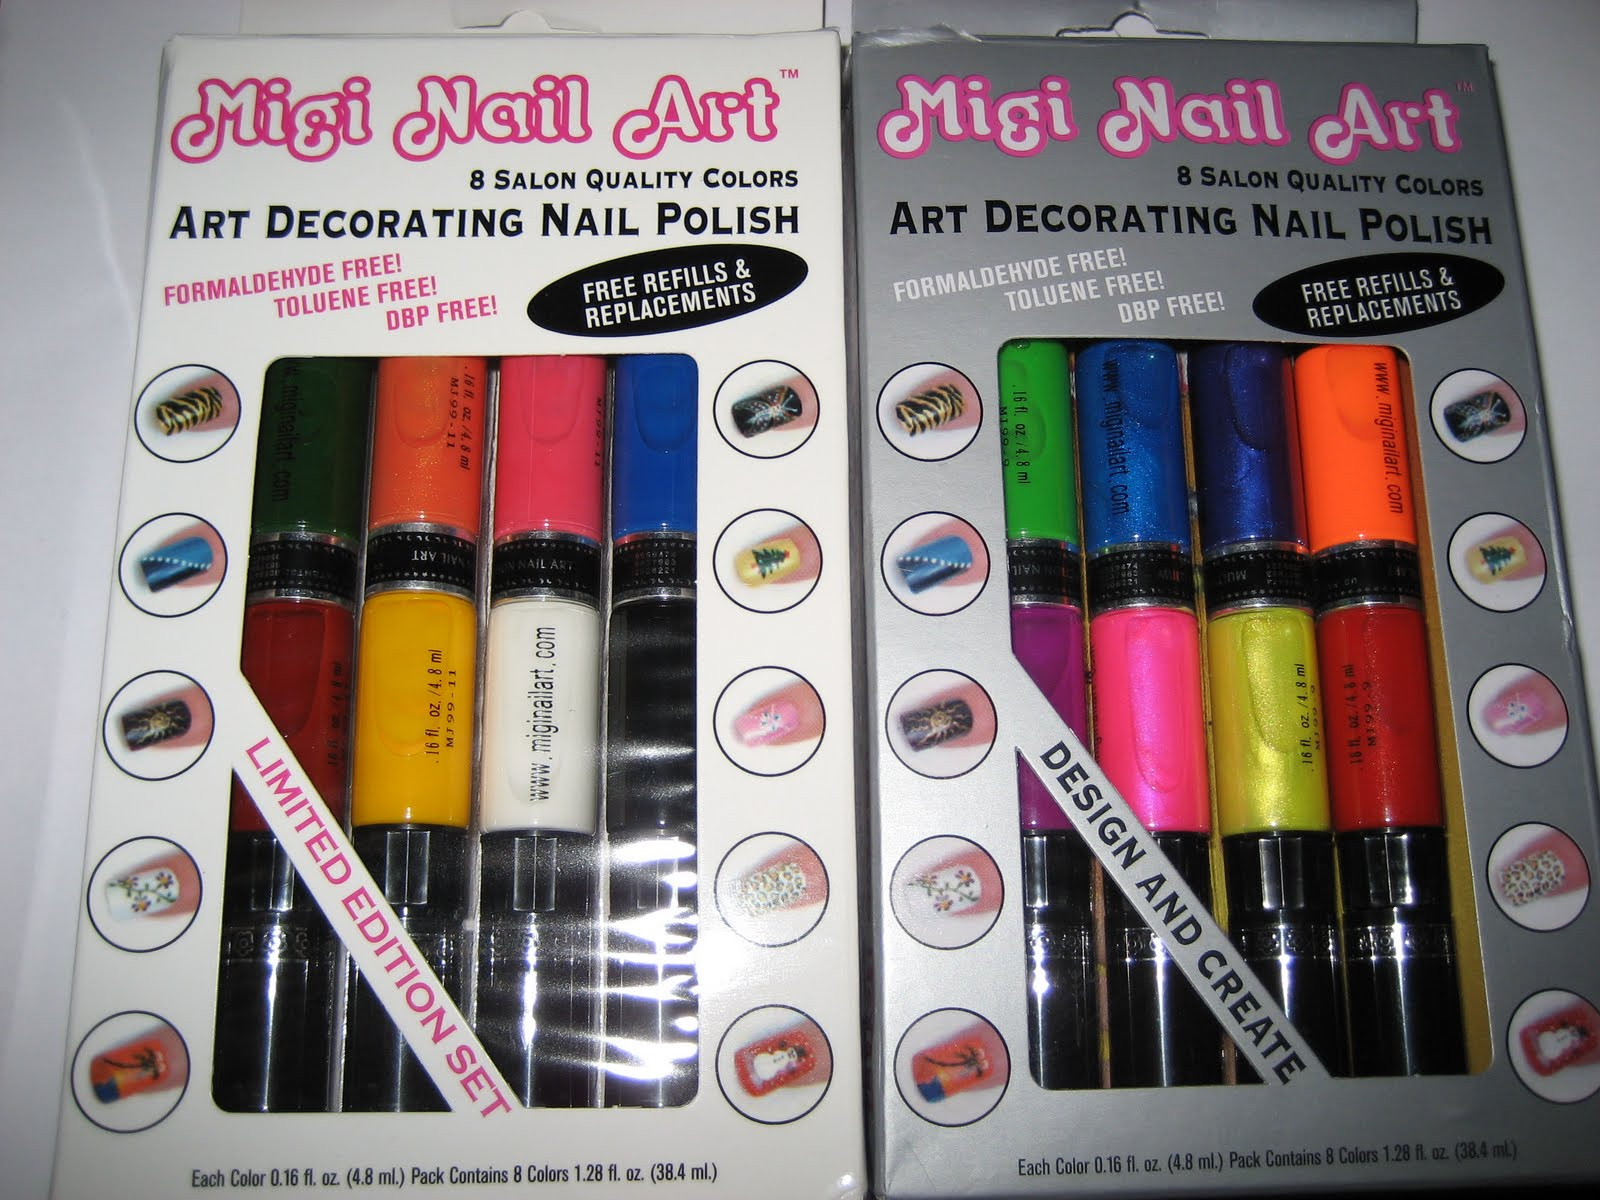 migi nail art, nail art, nail art kits, 3d nail art, nail art design, how to do nail art, nail art pens, simple nail art, nail art designs, nail art designs gallery, pictures of nail art, nail art ideas, nails art, nails art design, nail art magazine, nail art images-59